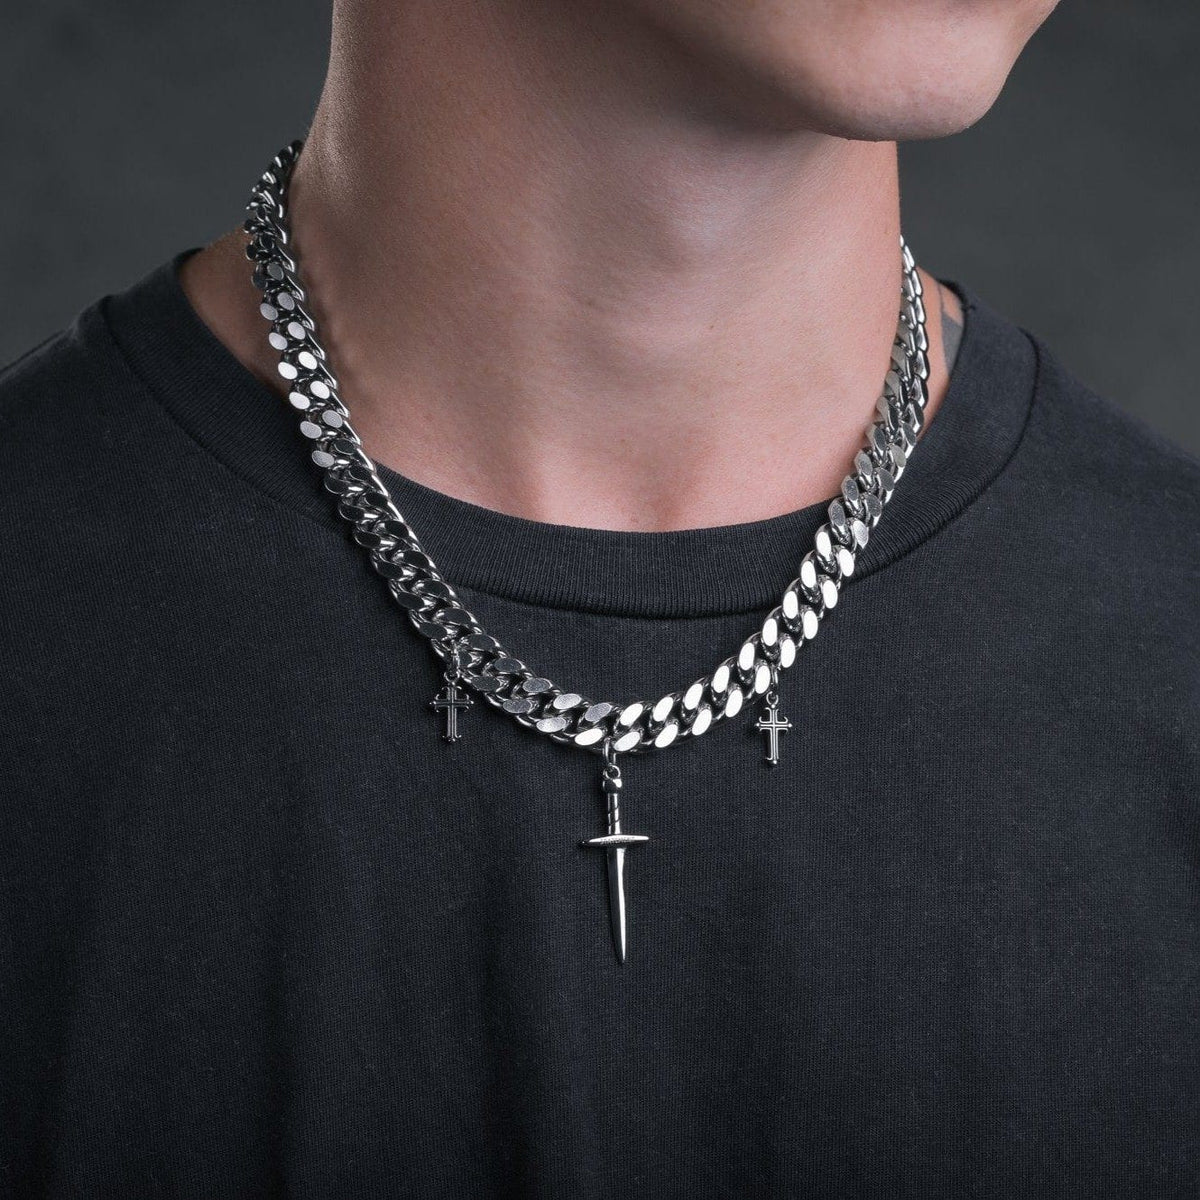 Cuban Link Chain Necklace With Dagger Pendants_03